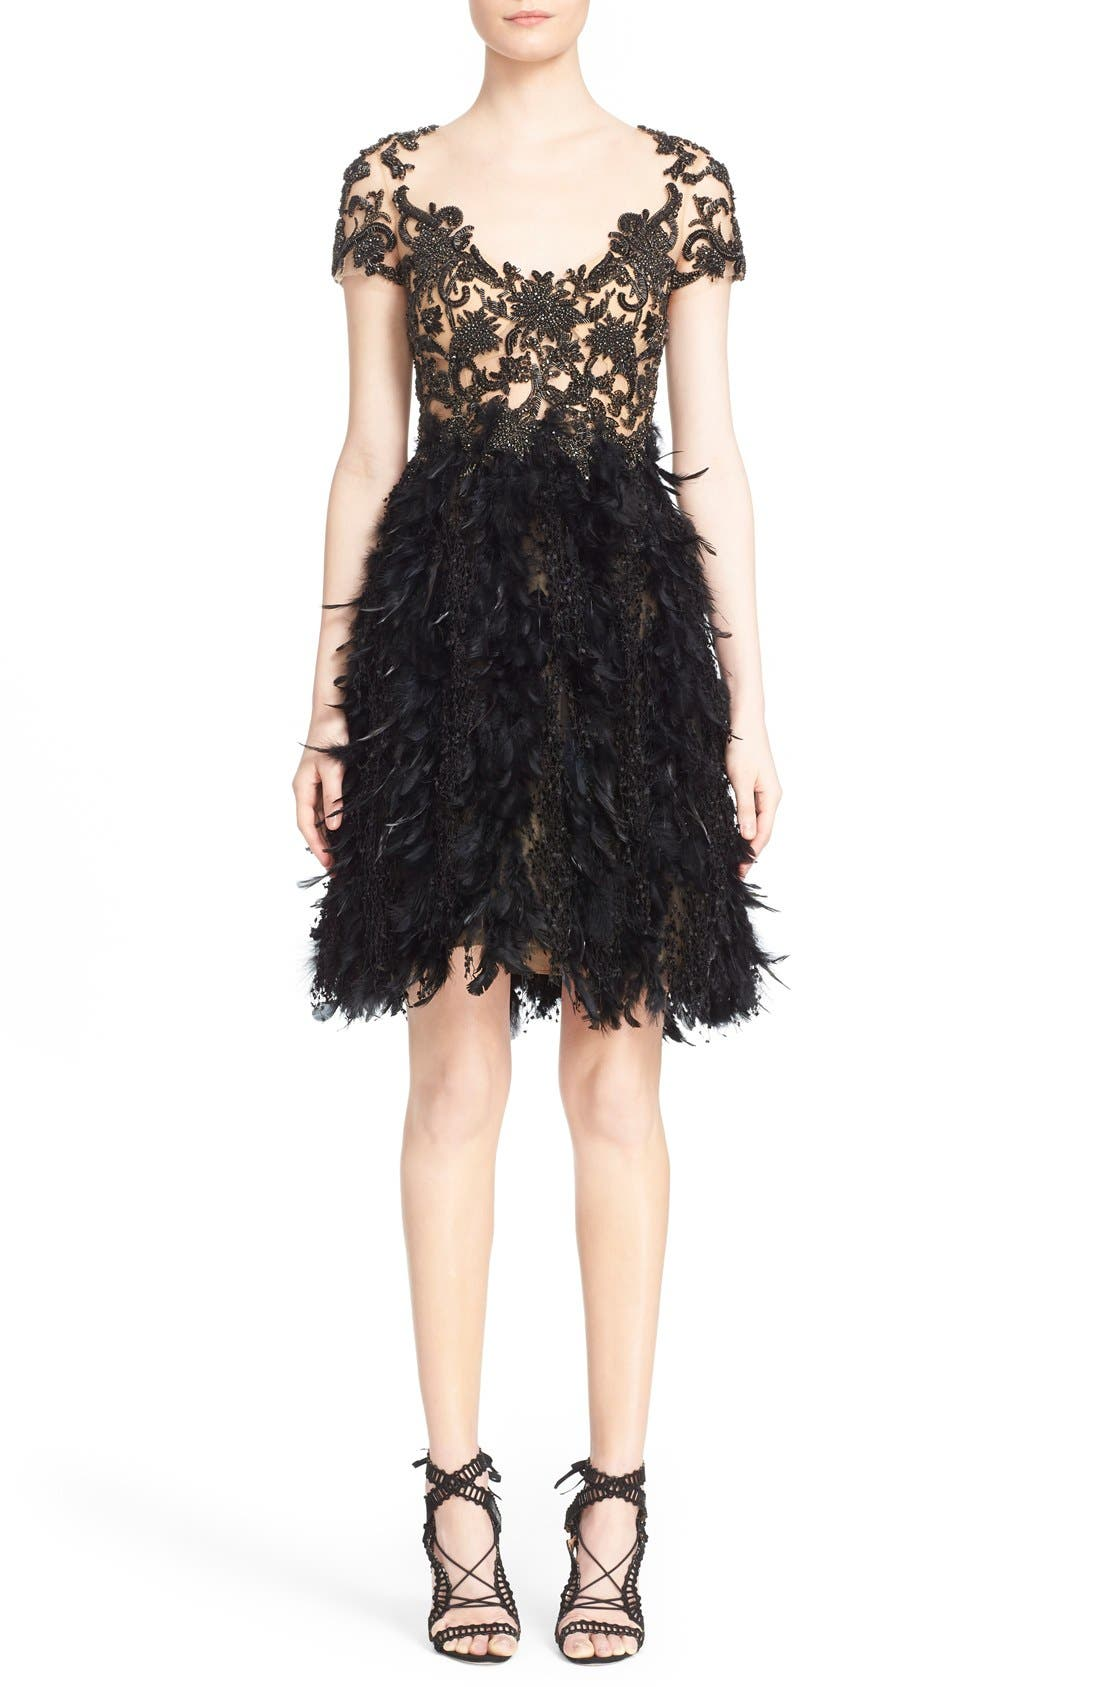 Alternate Image 1 Selected - Marchesa Embroidered Illusion & Feather Cocktail Dress (Nordstrom Exclusive)